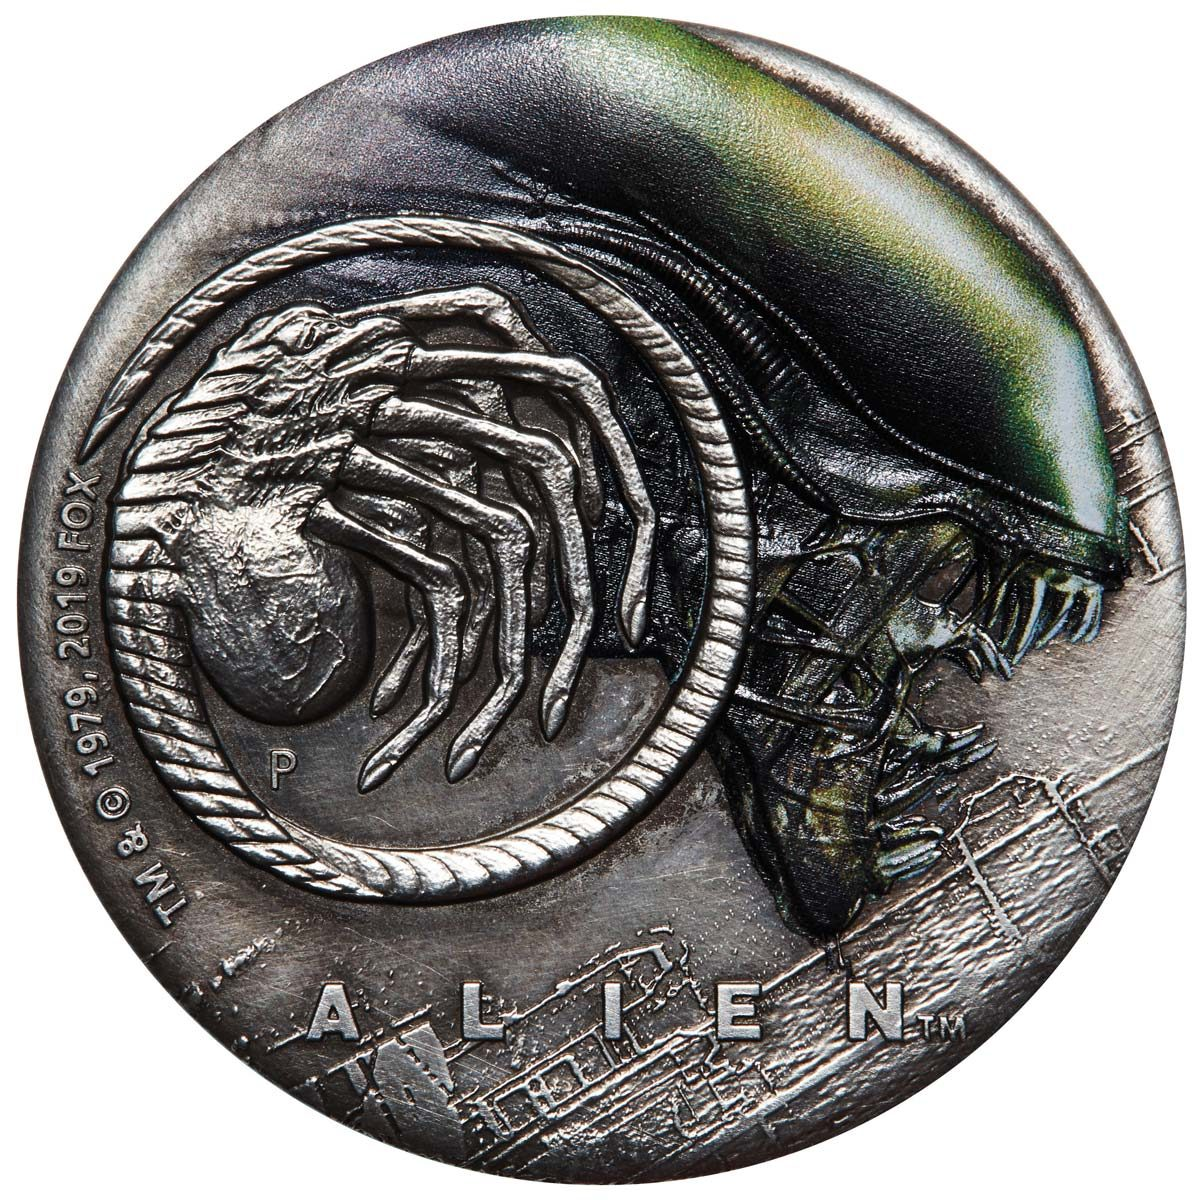 ALIEN 40TH ANNIVERSARY 2019 Tuvalu 2oz silver antiqued coloured coin